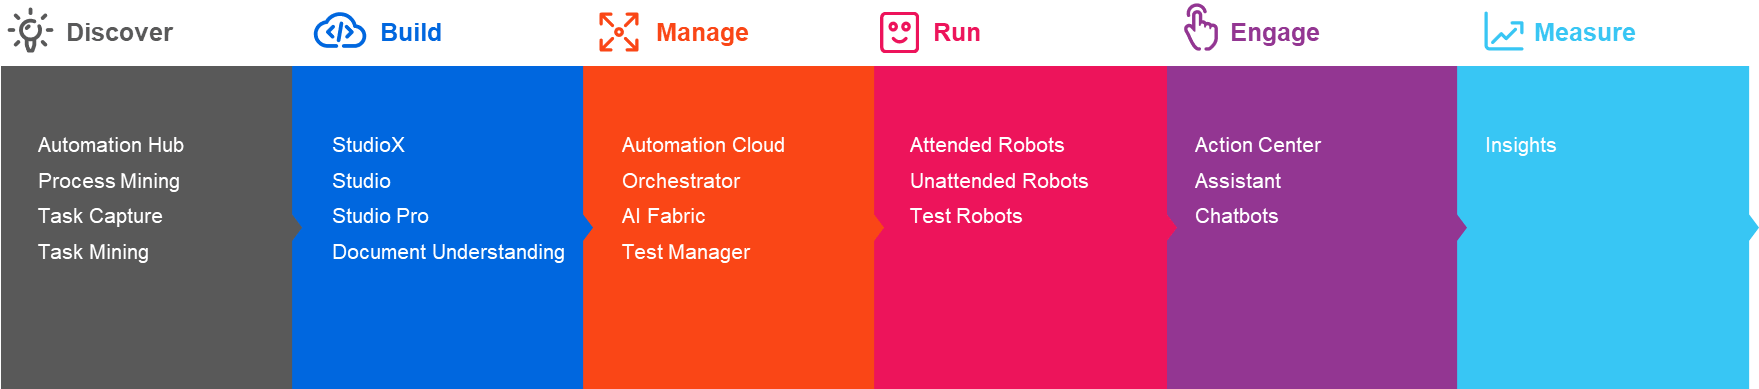 2020-automation-lifecycle-uipath